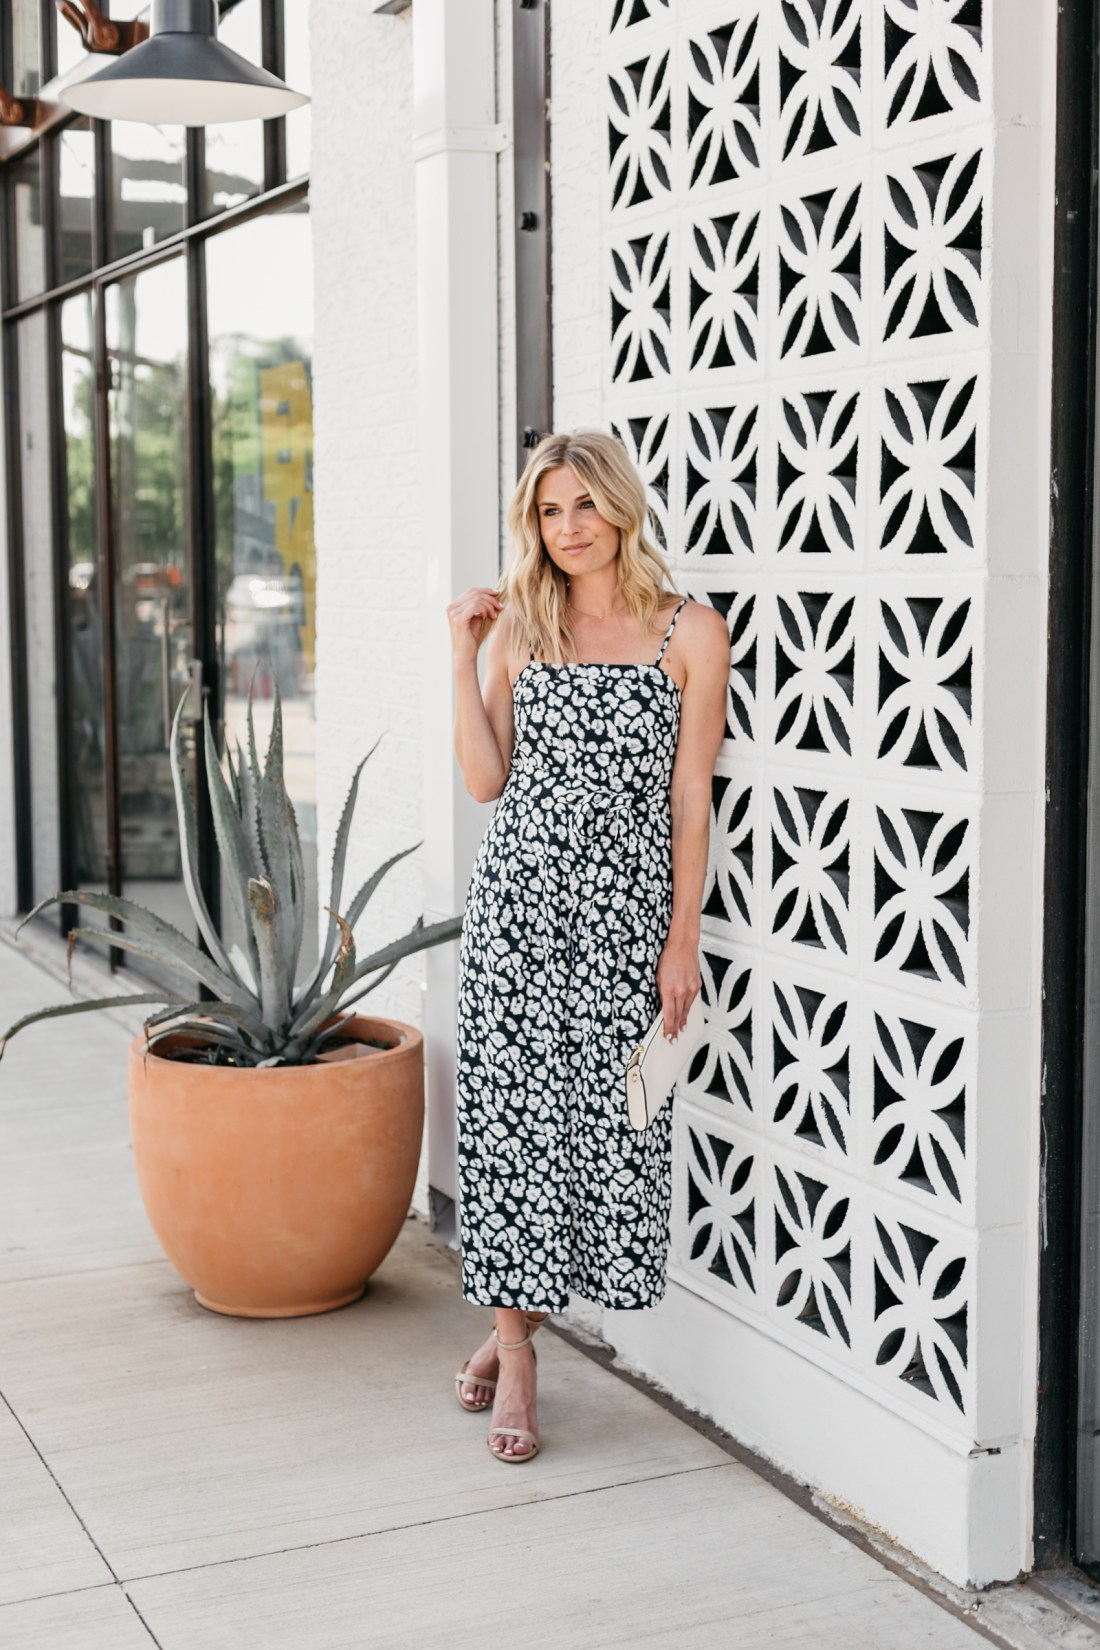 summer vacation outfits - One Small Blonde is wearing a navy leopard jumpsuit from Banana Republic